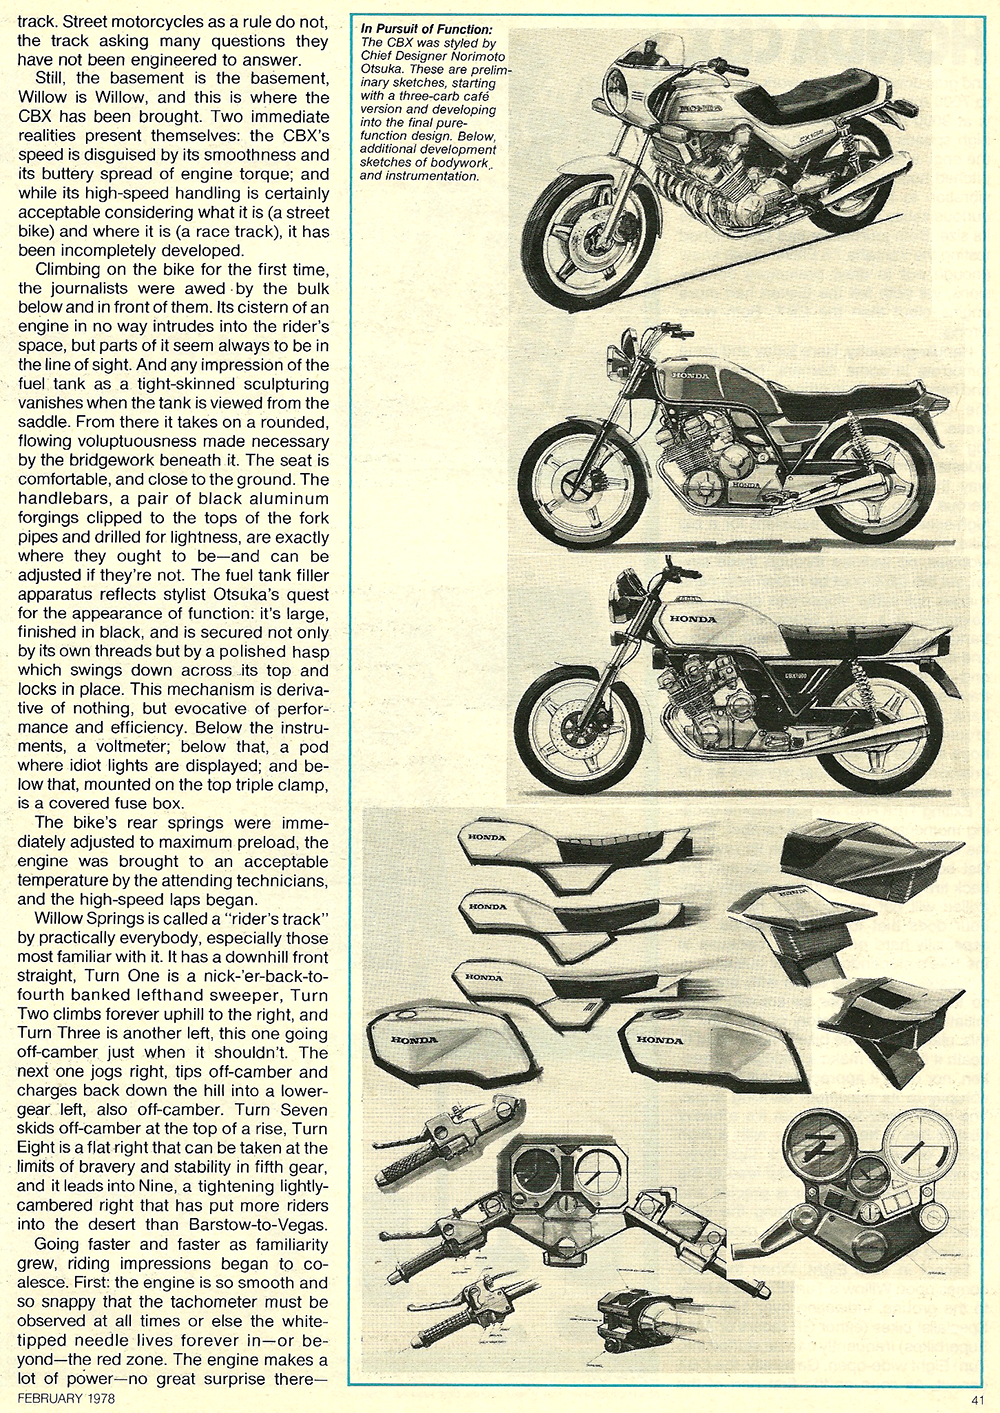 1978 Honda CBX Super Sport road test 08.jpg